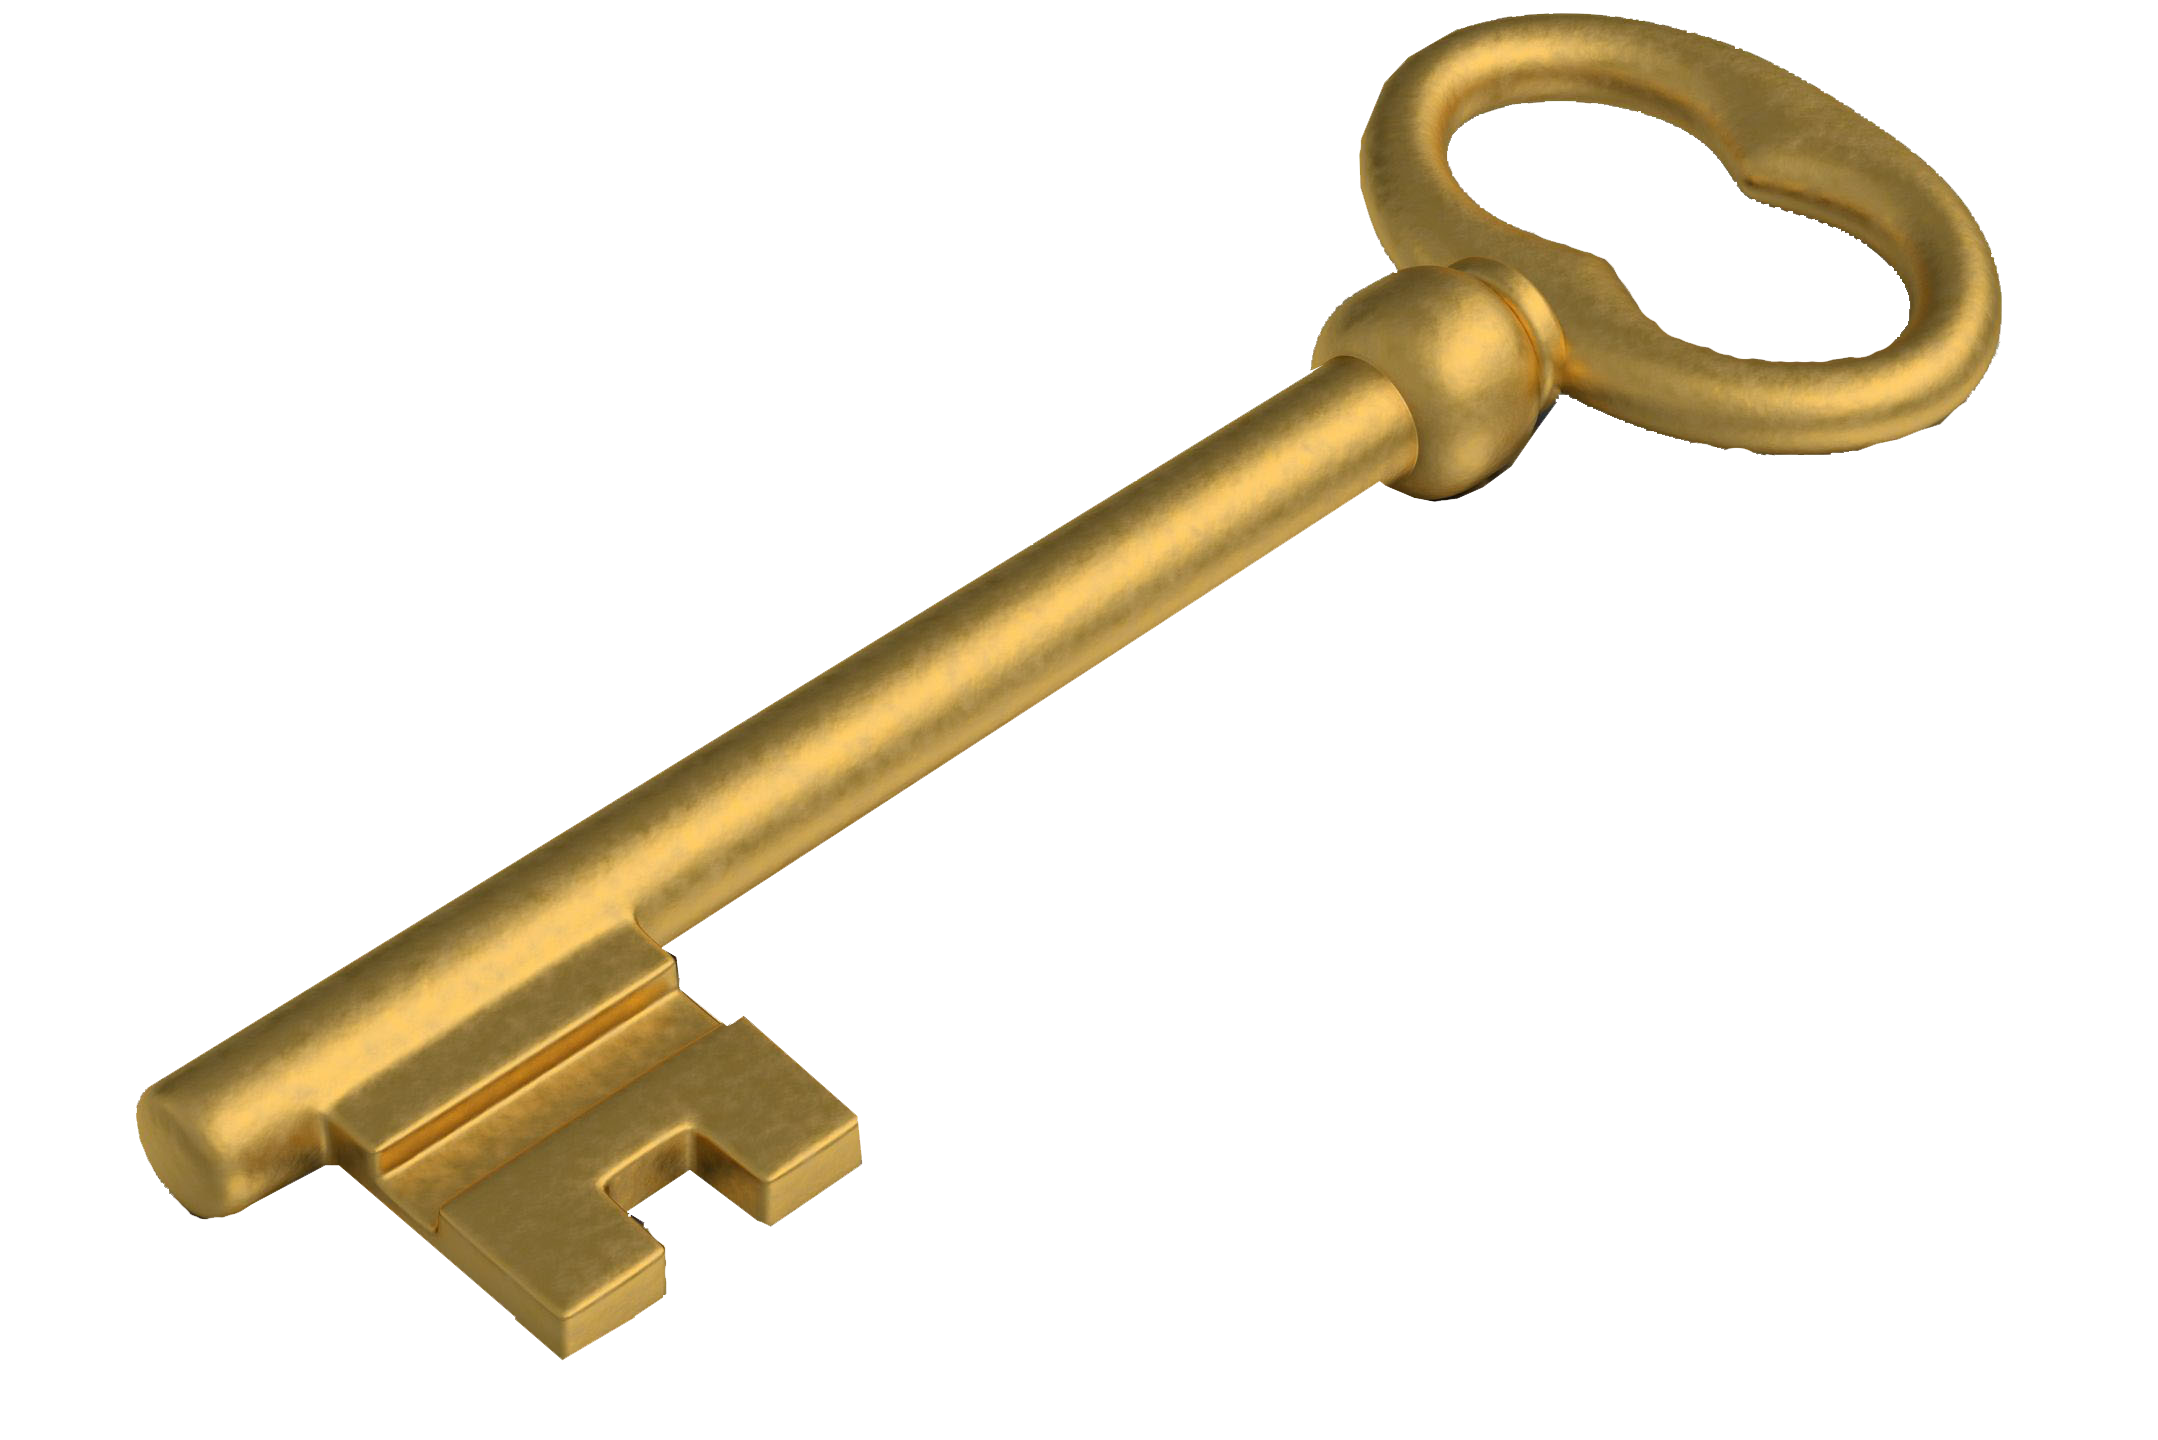 Golden Key - LIBERTY (SECURITY PRIVACY SAFETY) FREE WILL - UNIVERSAL SPENDING AUTHORITY - PRIVATE PROPERTY - FREE LAND - THERE IS NO GOVERNMENT - A GUARANTEED LIFETIME INCOME - NOW YOU OWN YOUR HOME AND LAND - NOW YOU HAVE AN INCOME - YOU WILL ALWAYS OWN YOUR HOME AND LAND - YOU ARE SAFE AND SECURE